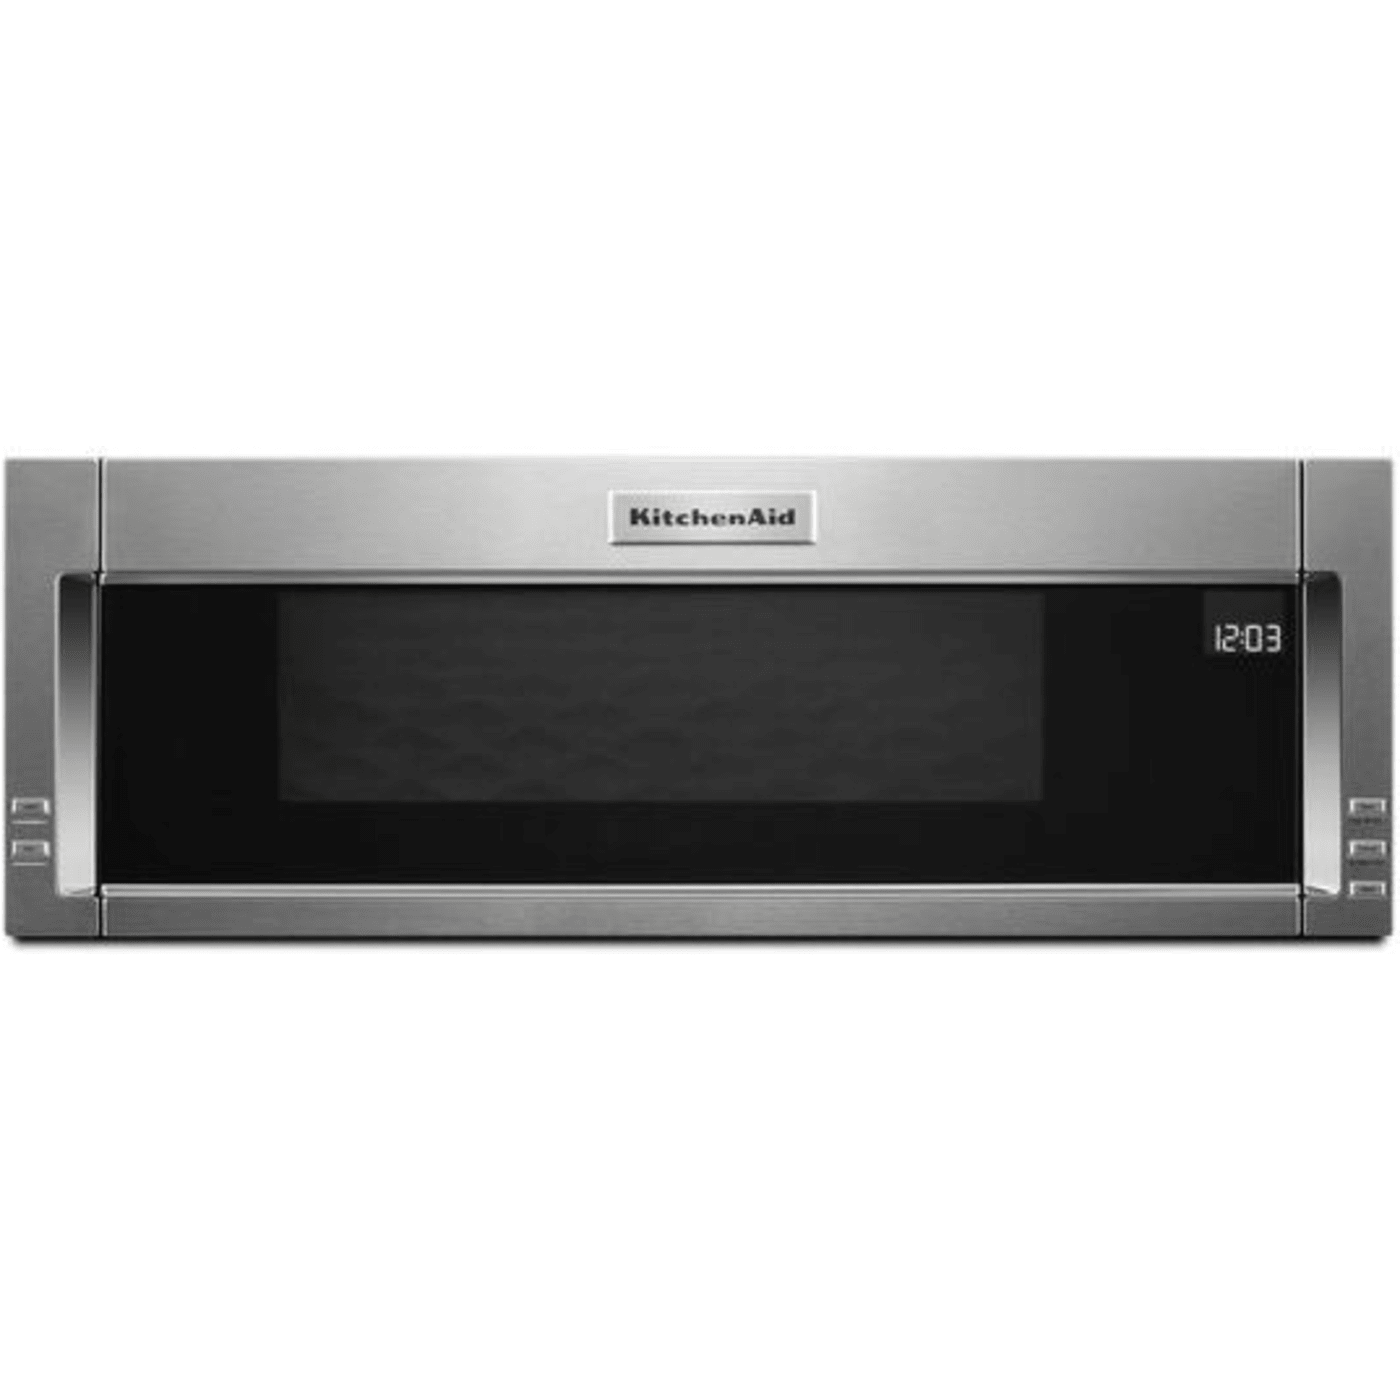 Kmls311hss By Kitchenaid Over The Range Microwaves Goedekers Com Over The Range Microwaves Microwave Hood Range Microwave